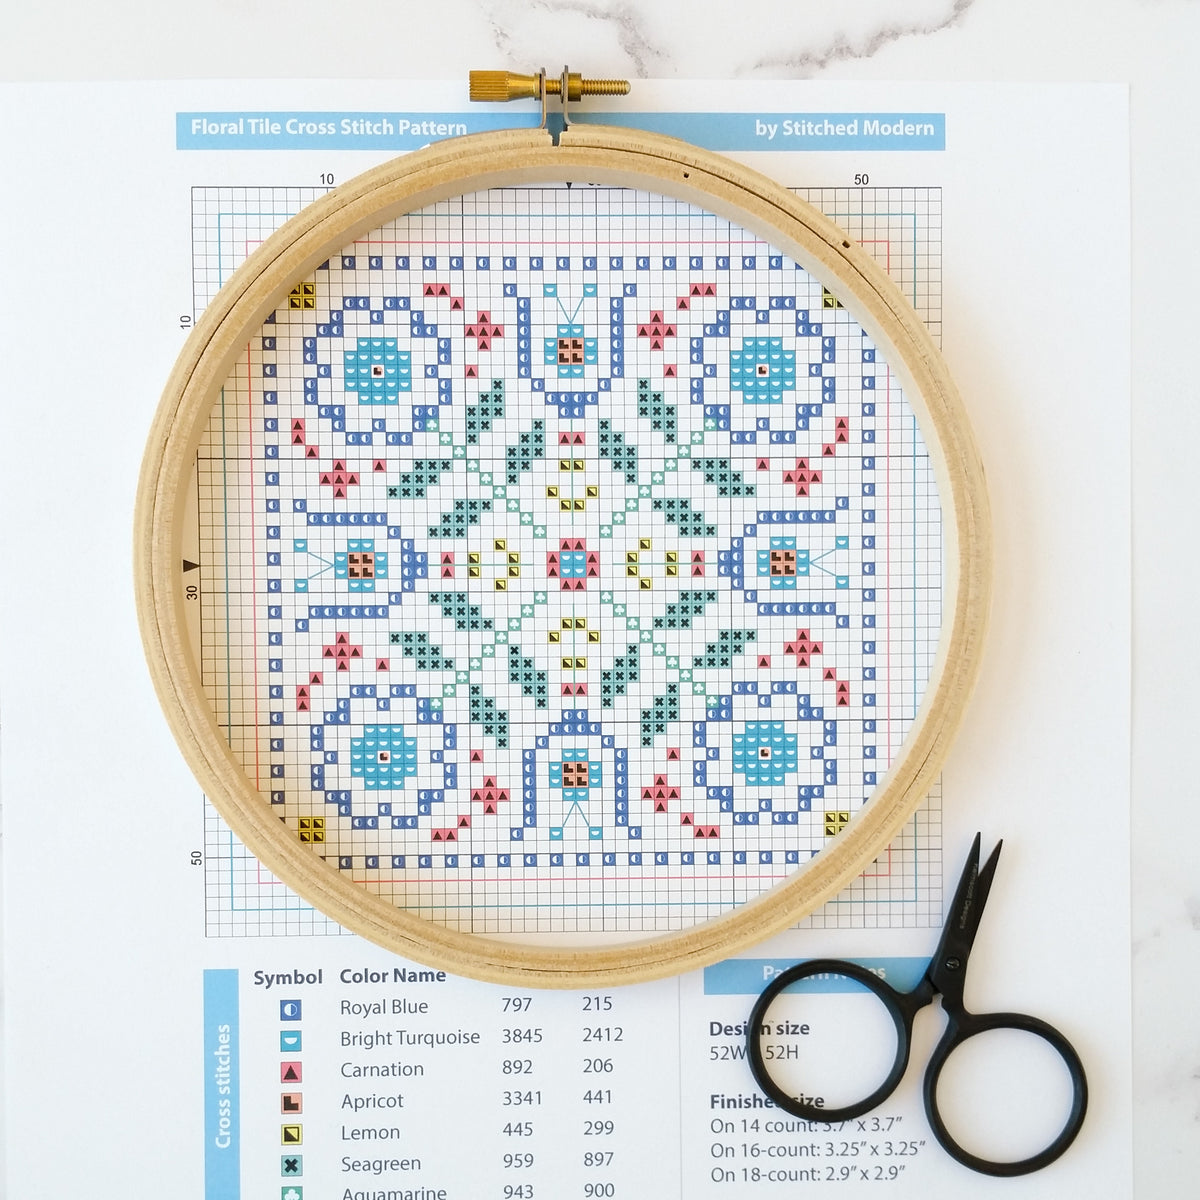 How To Read A Cross Stitch Pattern Stitched Modern